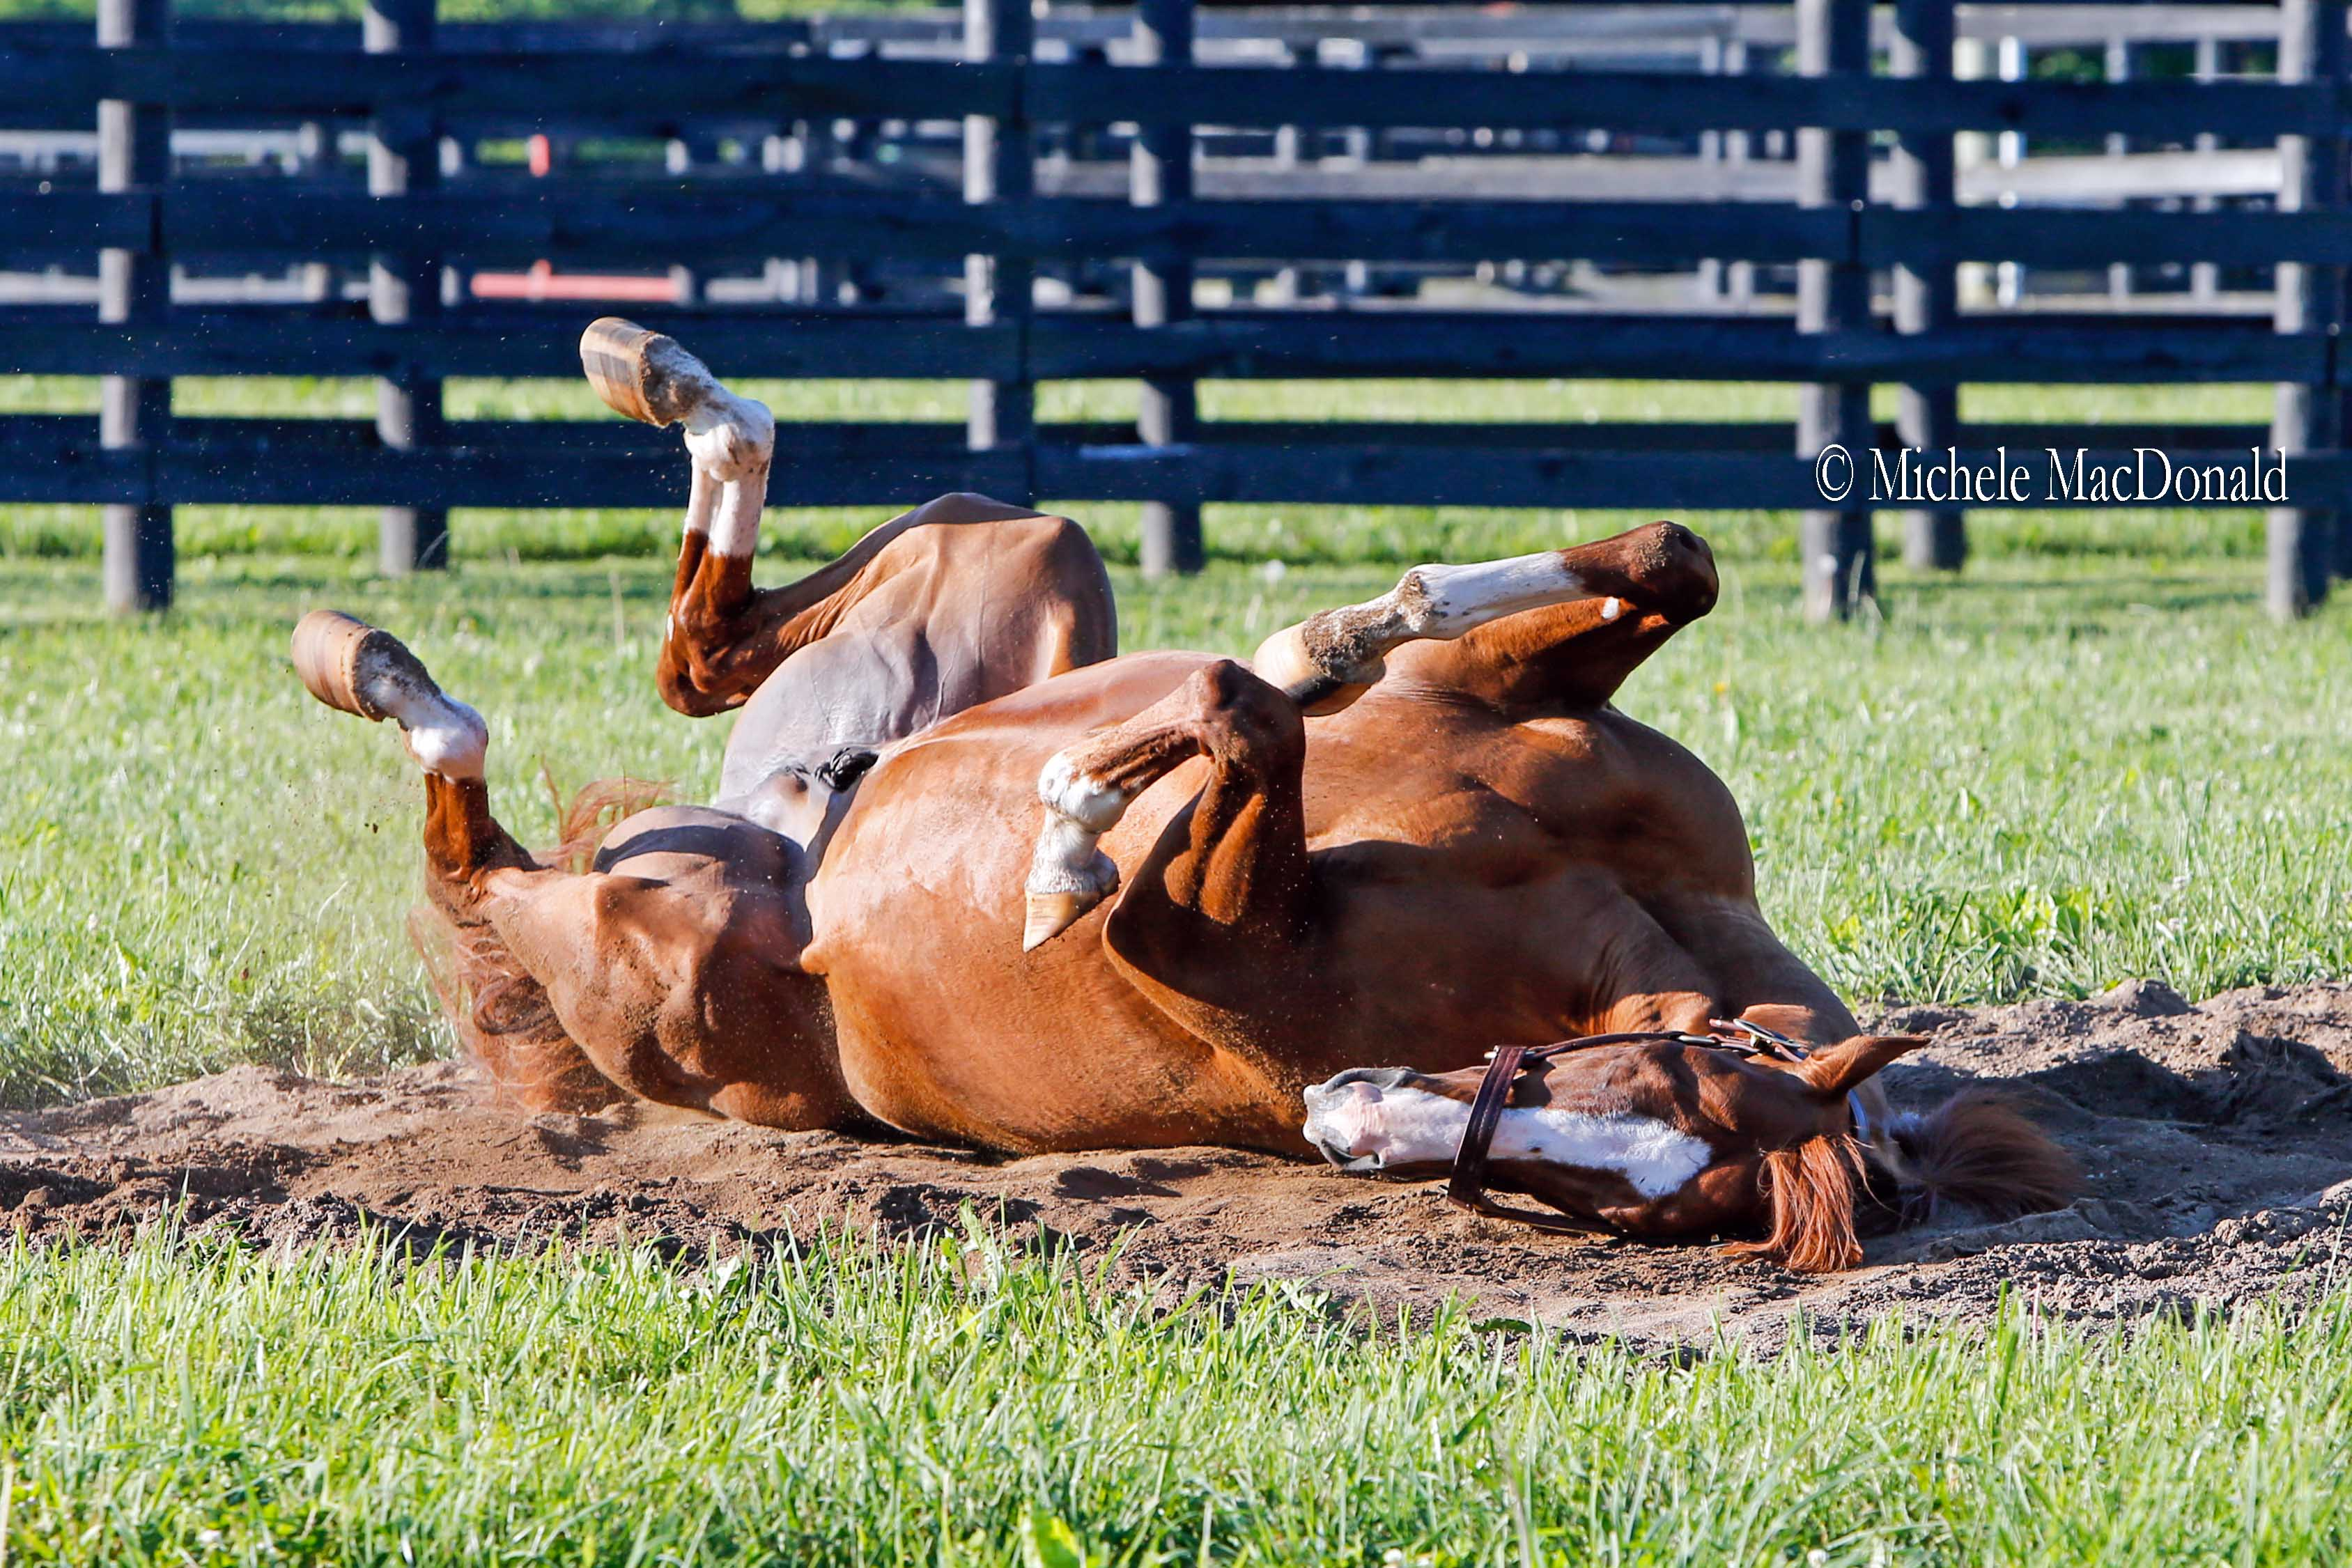 Chrome enjoys a vigorous roll in the sandpit in his paddock. Photo: Michele MacDonald